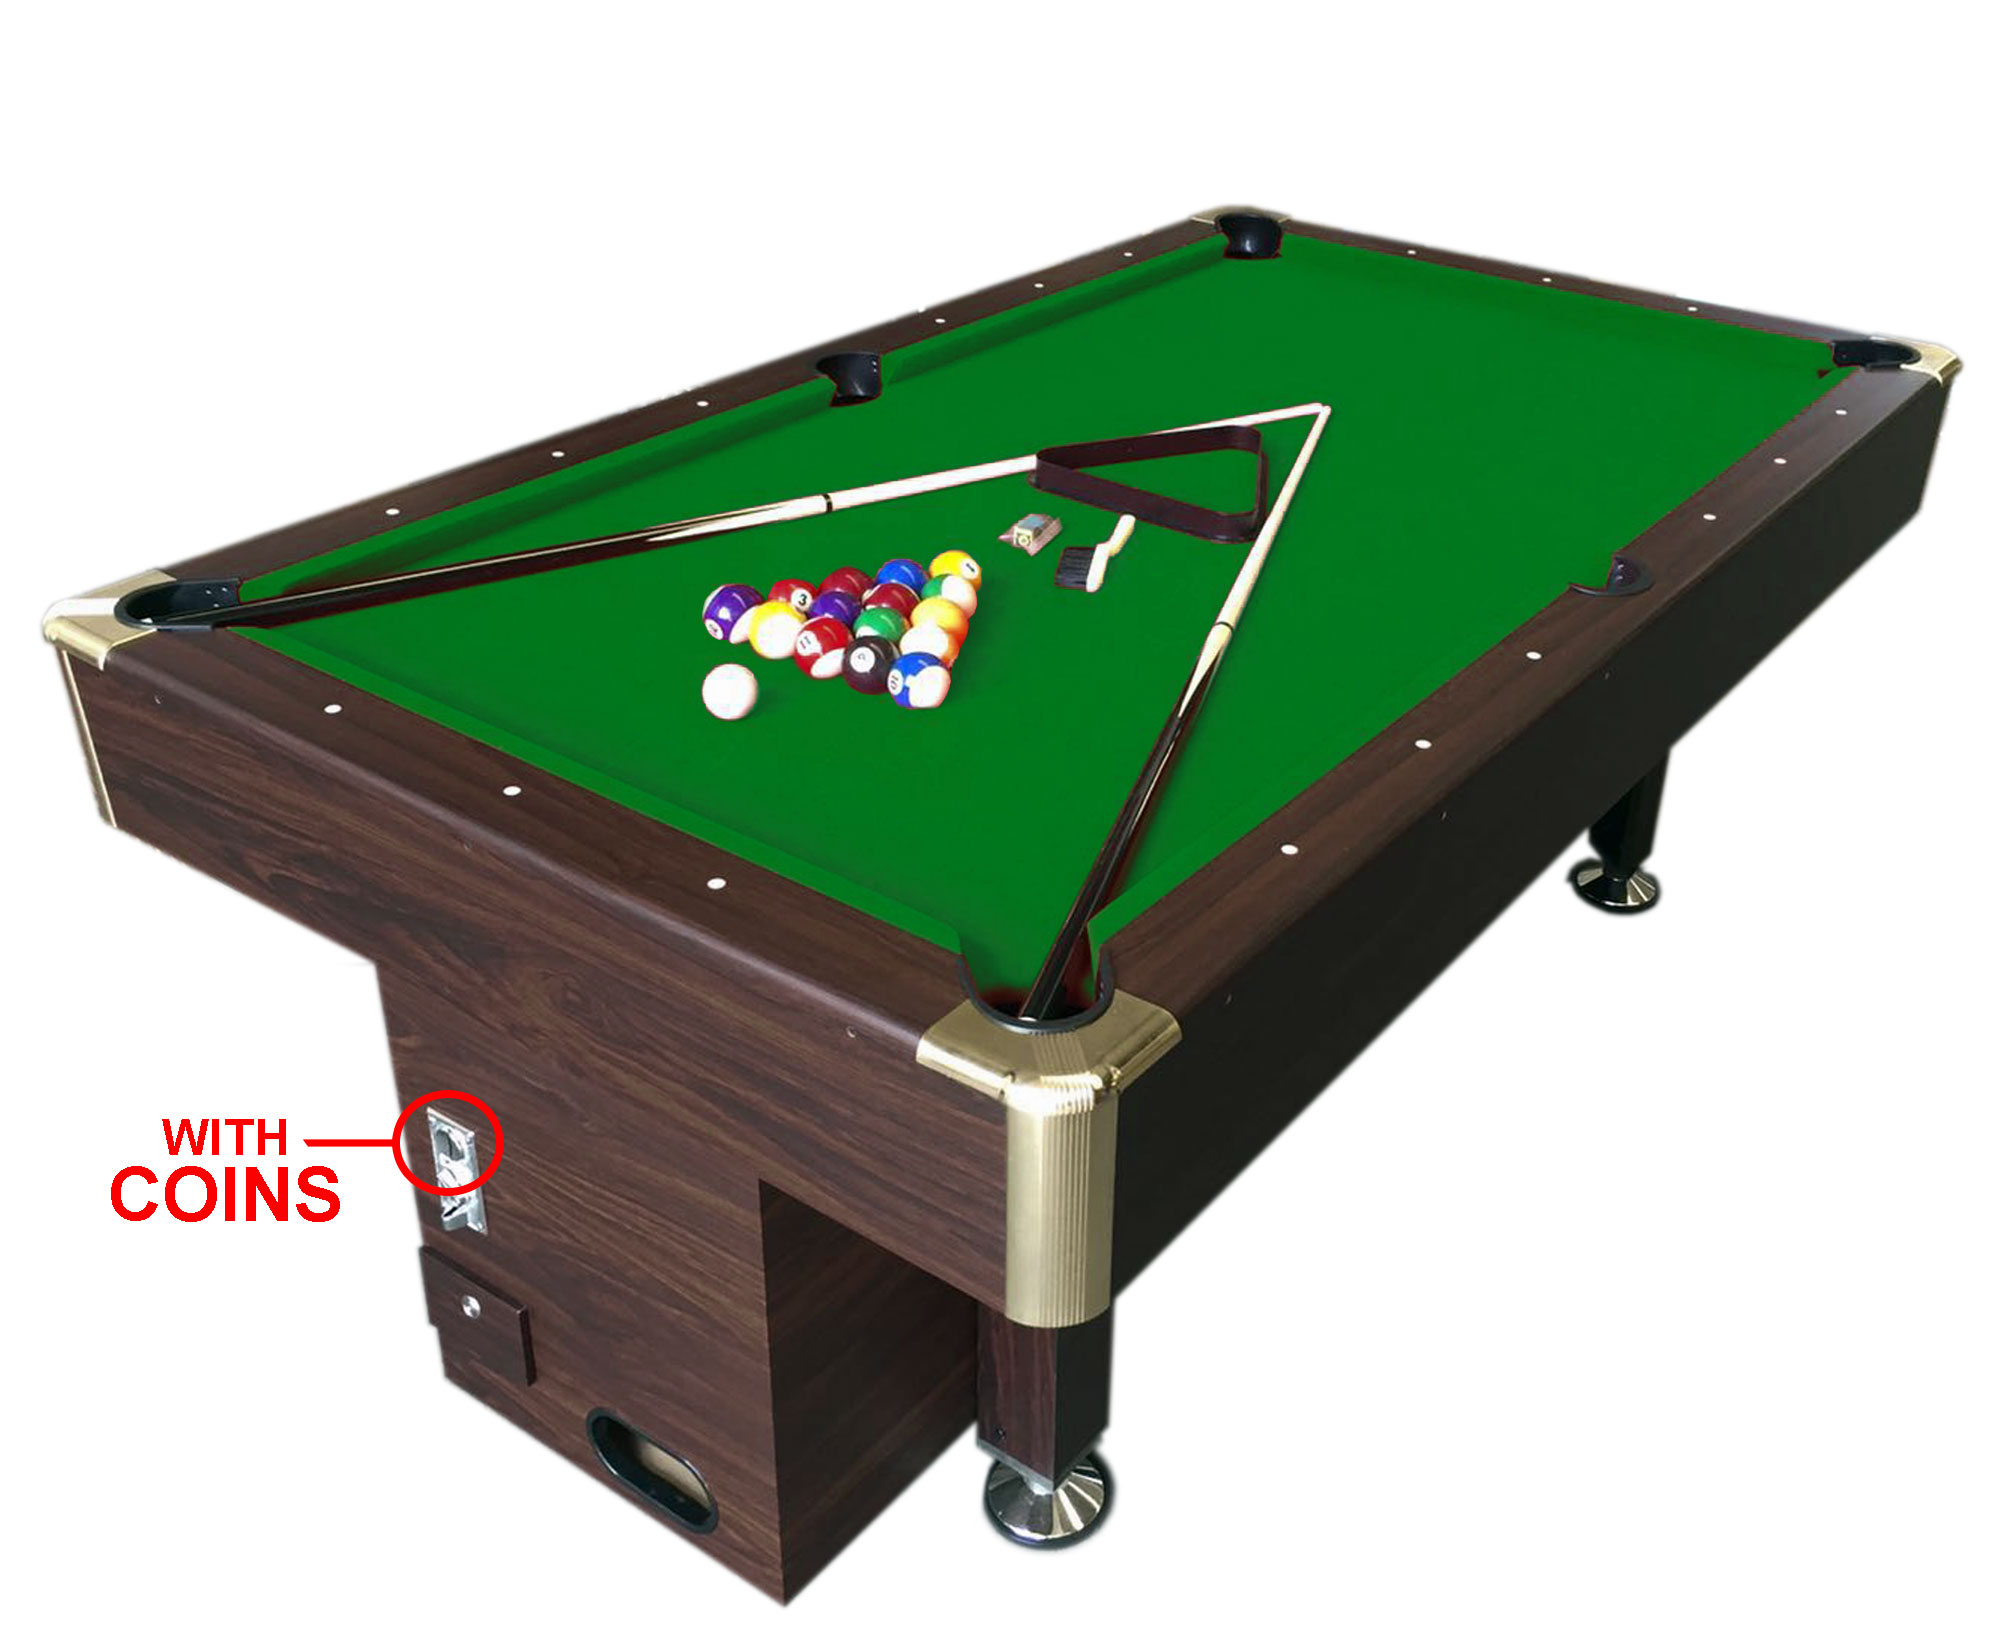 Ft Pool Table Billiard Playing Cloth With Coin Machine For Public - Ideal room size for pool table